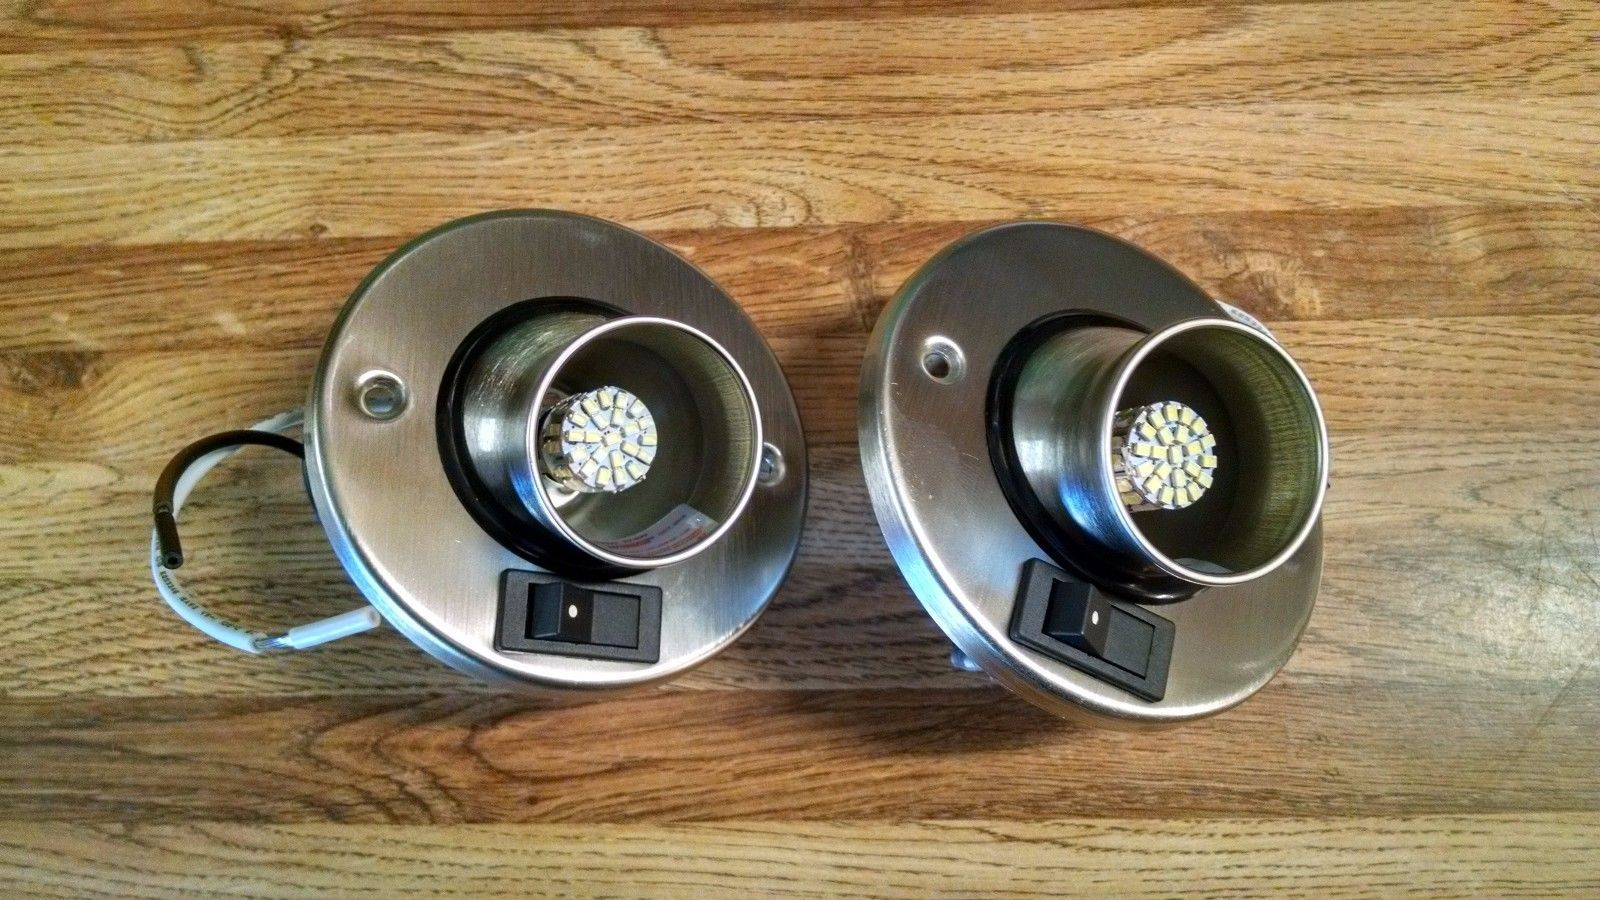 2pk 12v Led Rv Camper Trailer Motorhome Directional Reading Light Brushed Nickel Camper Trailers Rv Campers Rv Lighting